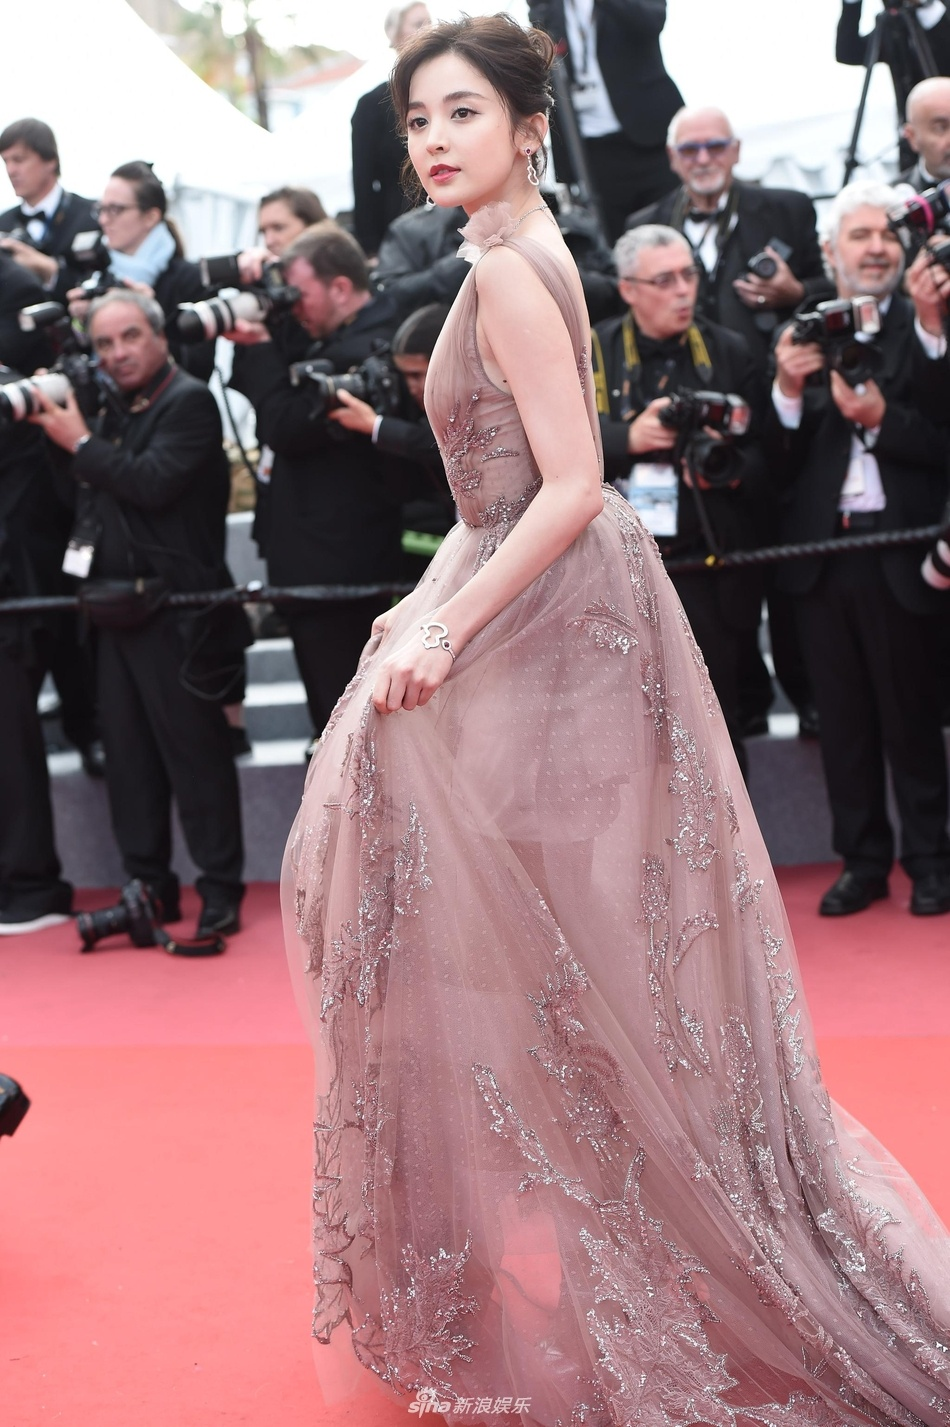 Tham do Cannes anh 2